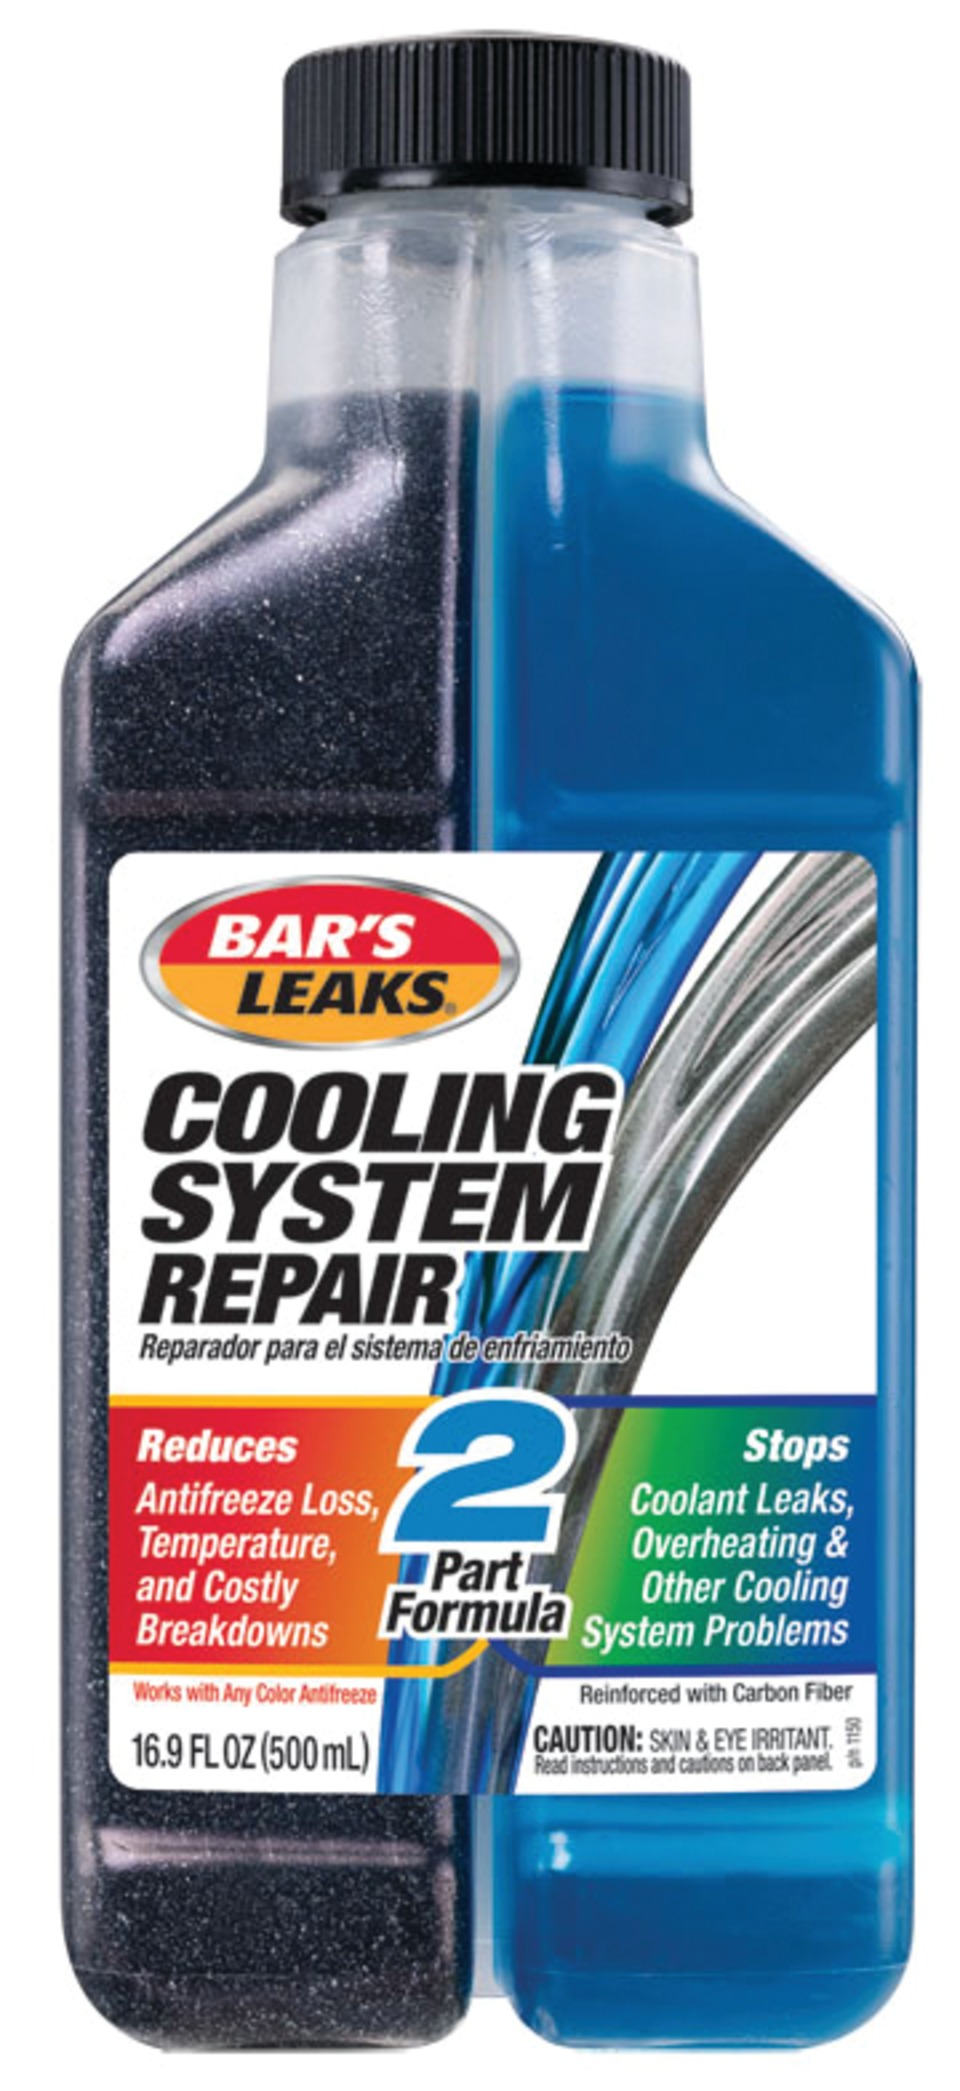 Bar's Leaks Cooling System Repair, No. 1150, not only stops engine coolant  leaks and antifreeze loss, but also protects against overheating and future  ...